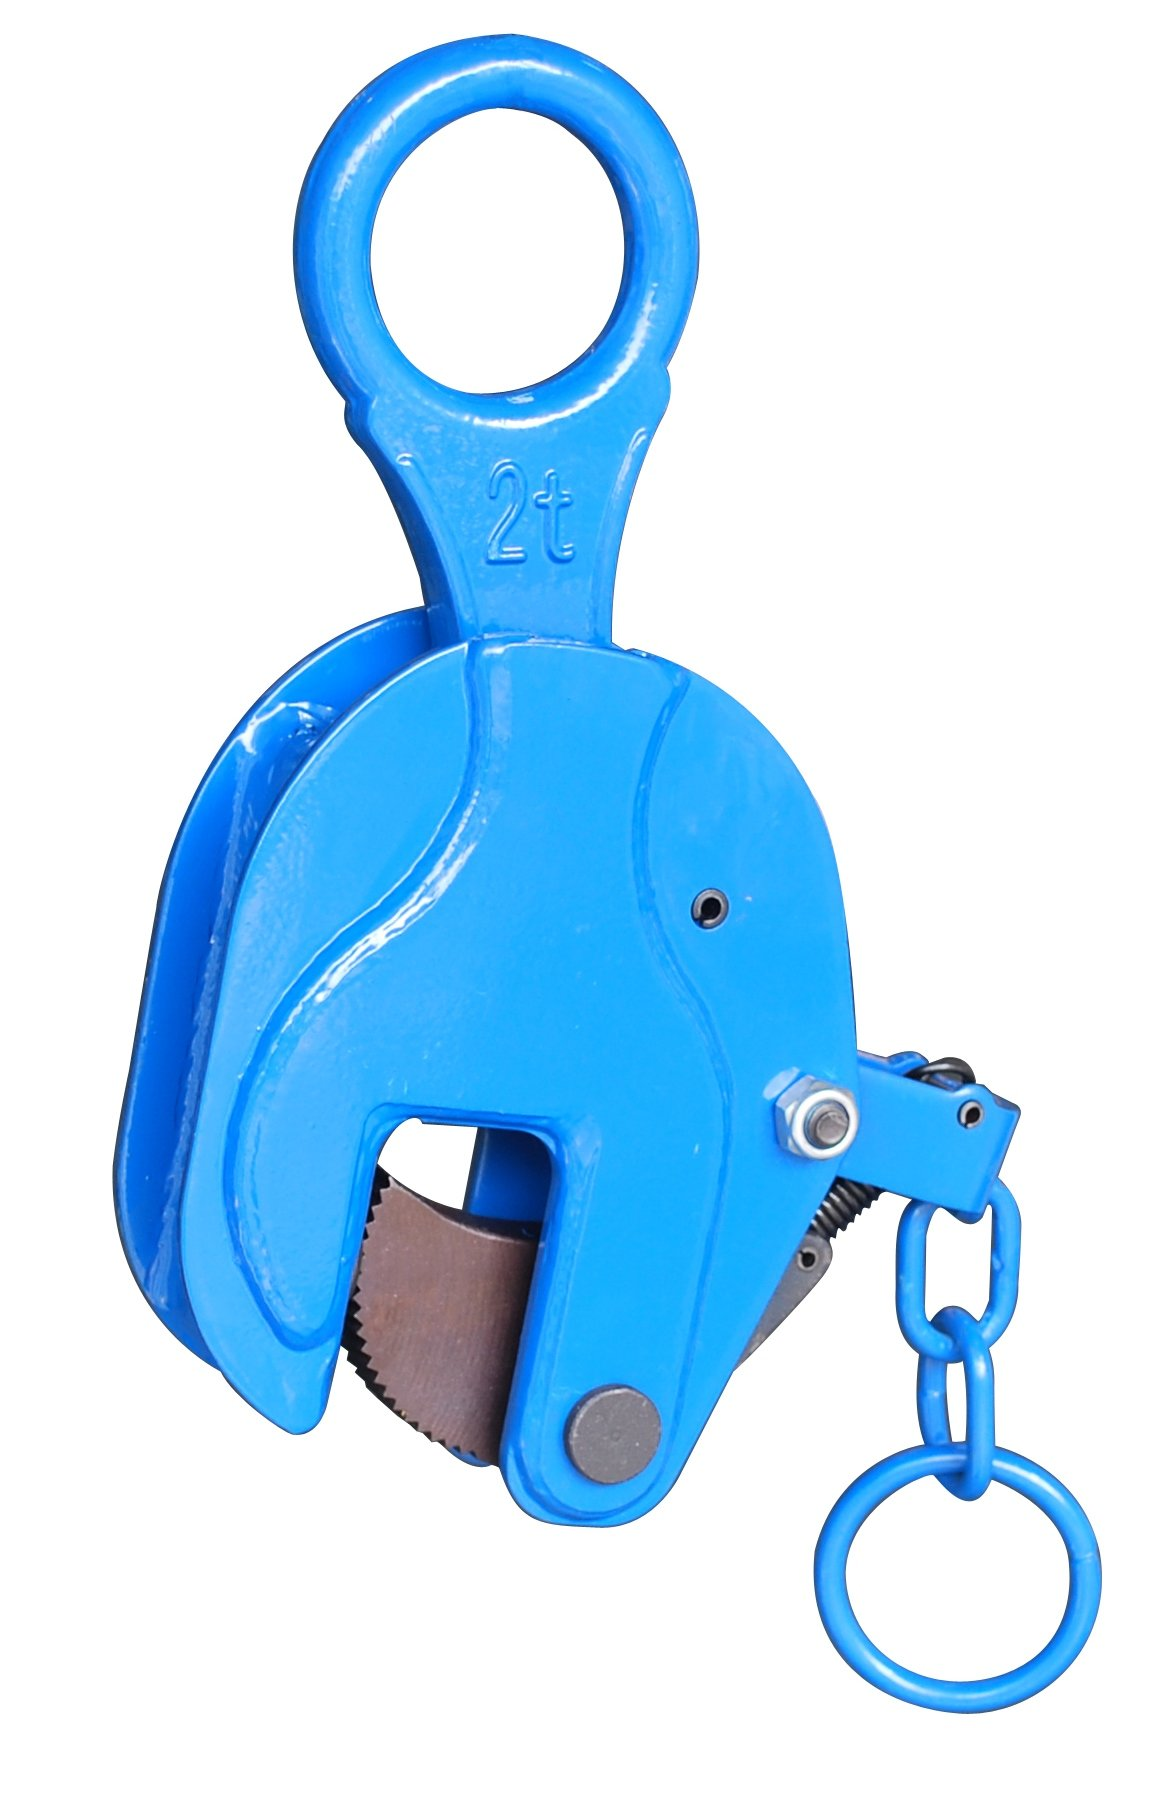 i-Lift Equipment ICDH3.2 Vertical Plate Clamp with Lock Handle, 7000 lb Working Load Limit